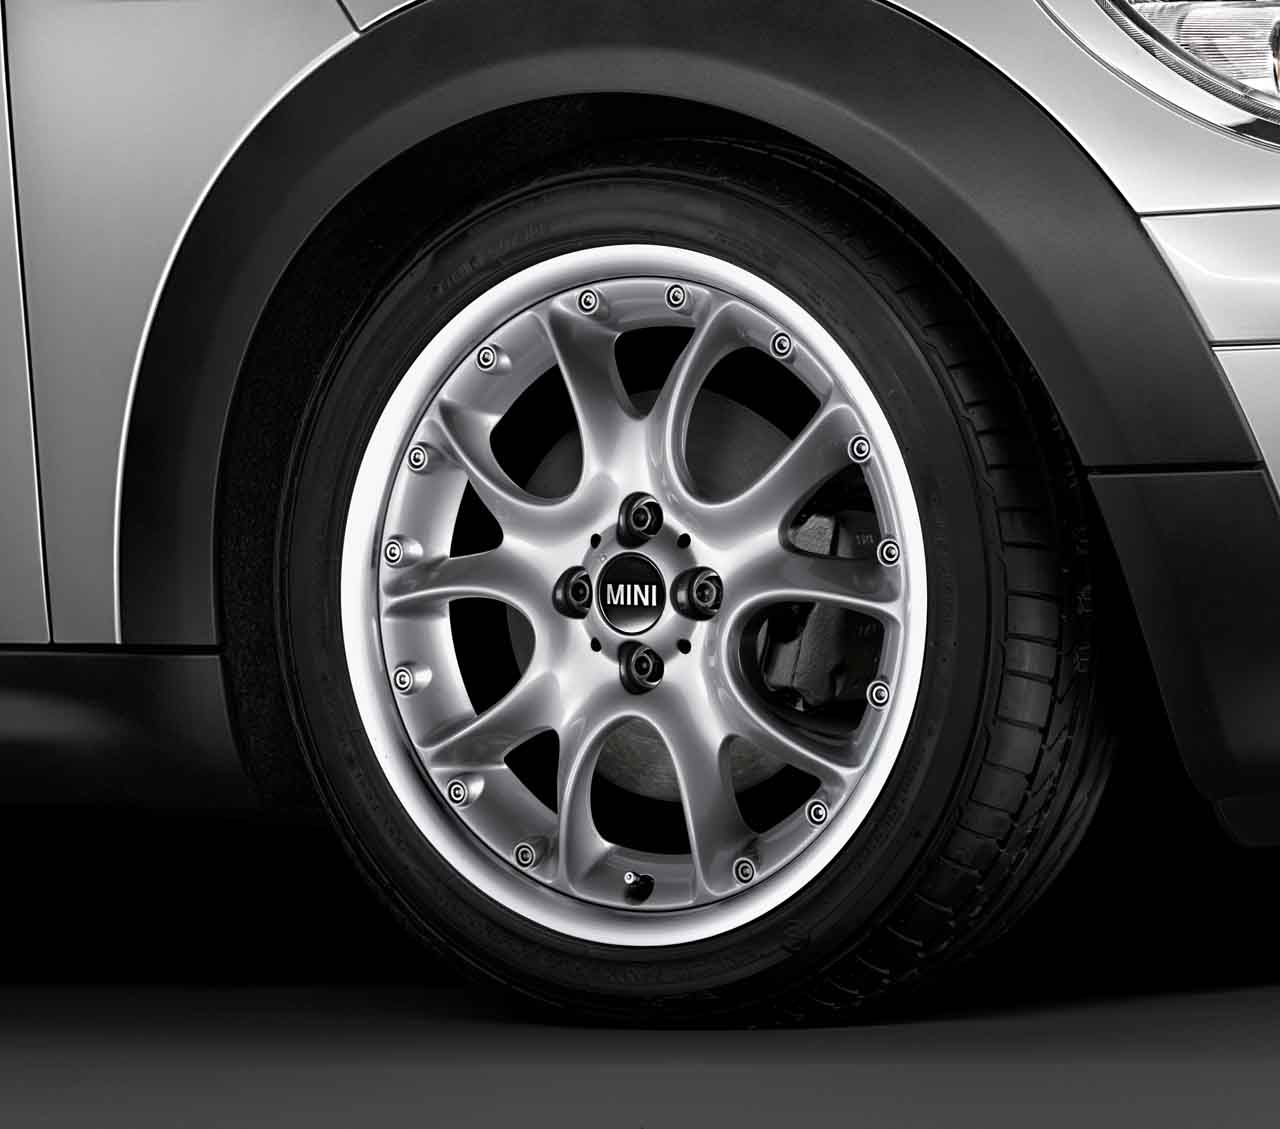 Mini Genuine 17 Inch Alloy Wheel Web Spoke Composite R98 Silver